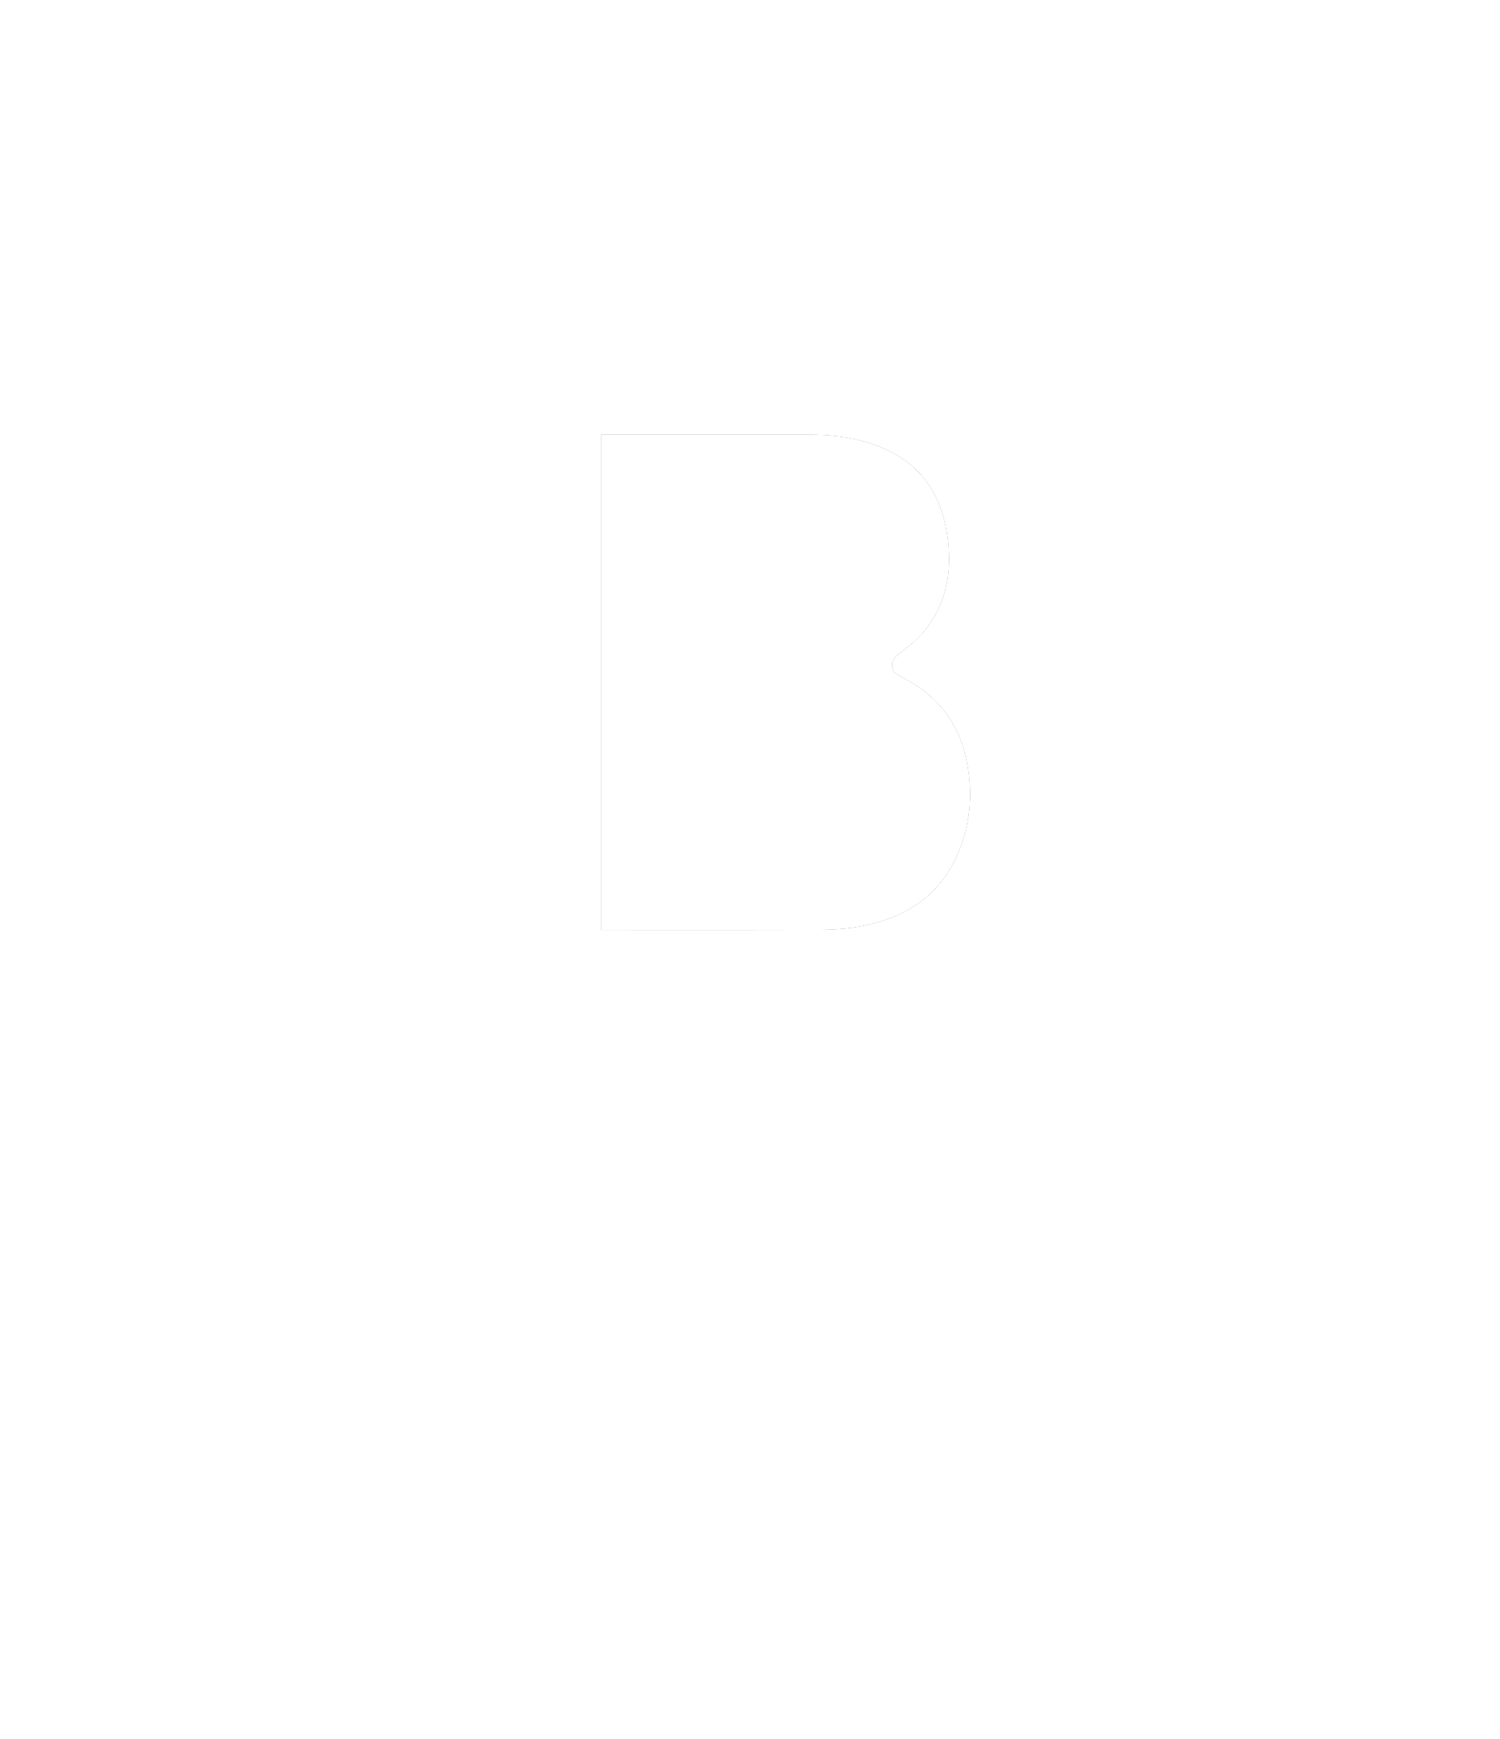 Blush Beach Club Hoi An